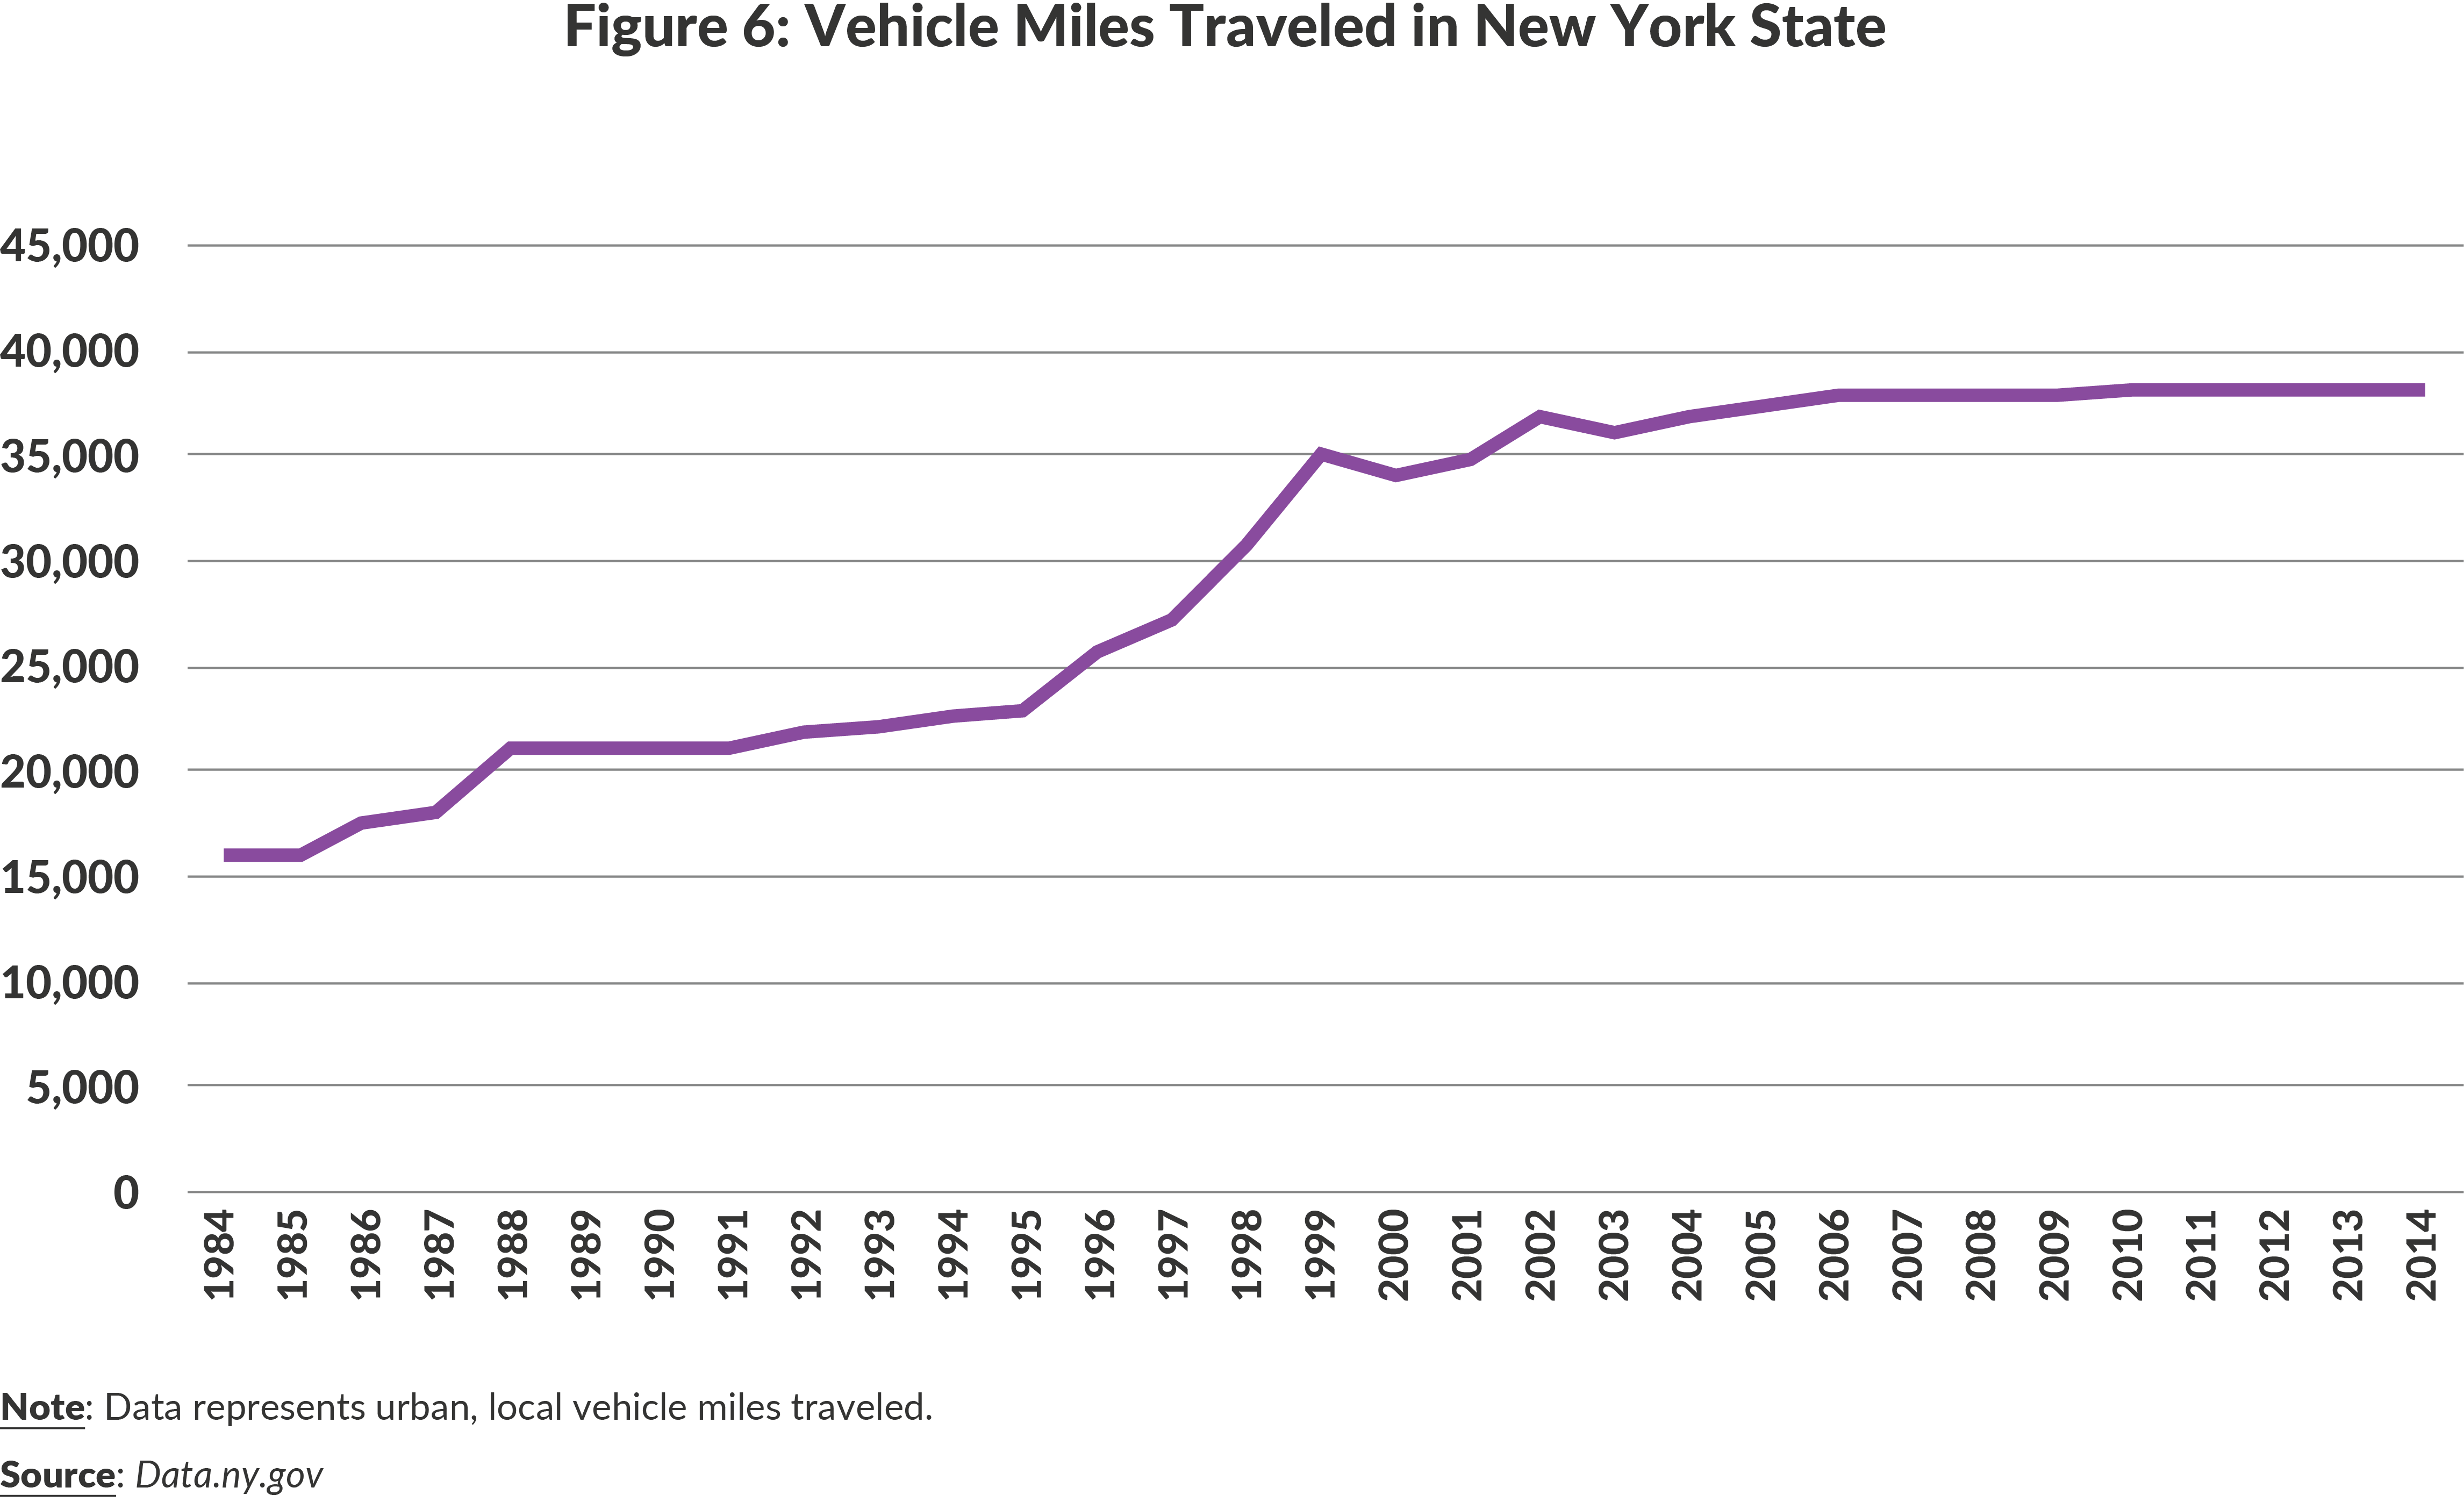 Figure 6: Vehicle Miles Traveled in New York State